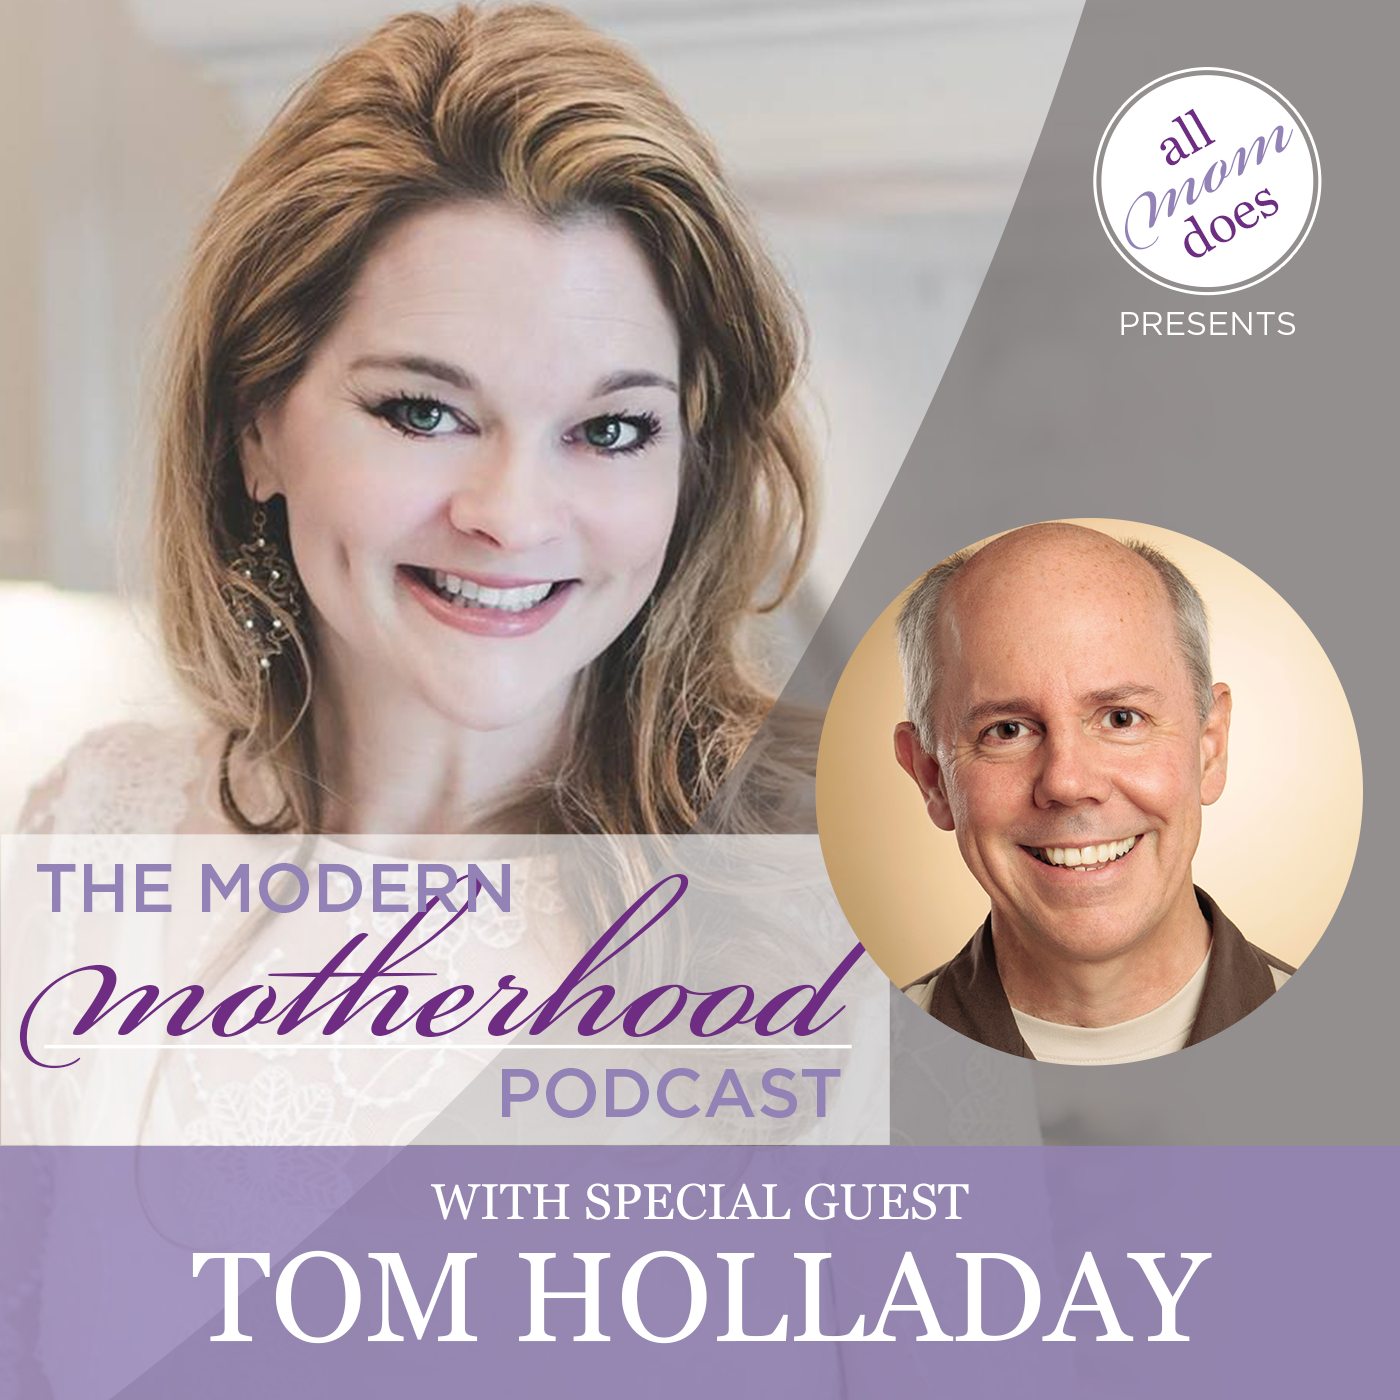 The Modern Motherhood Podcast #5: Tom Holladay